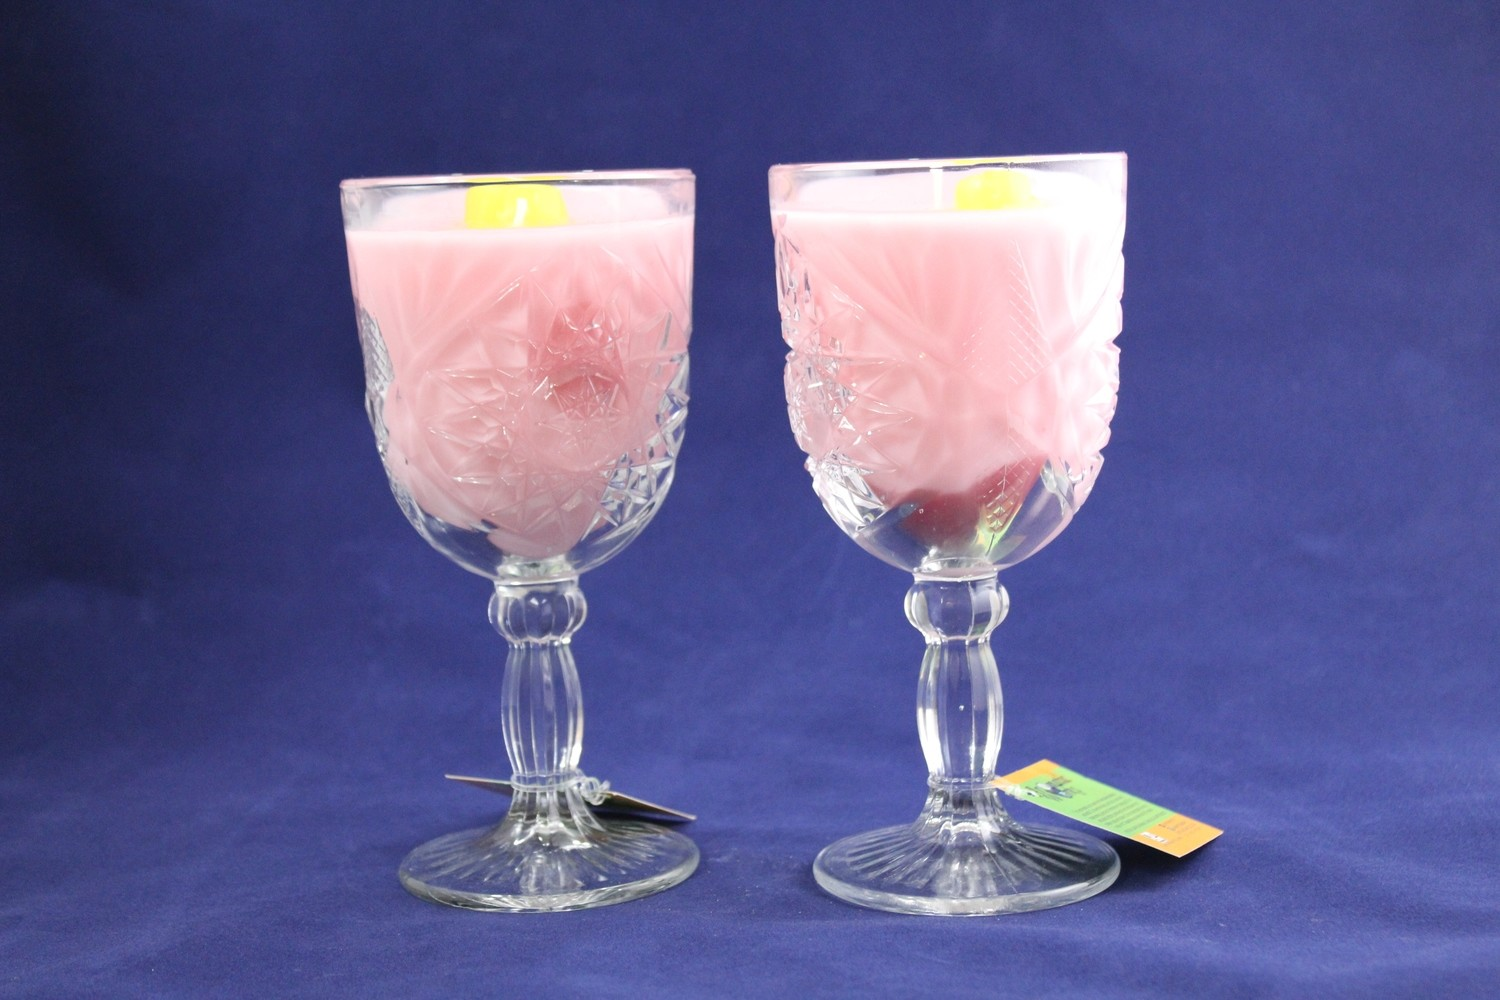 Summer's Love Scented Wax Candle In Large Water Goblet